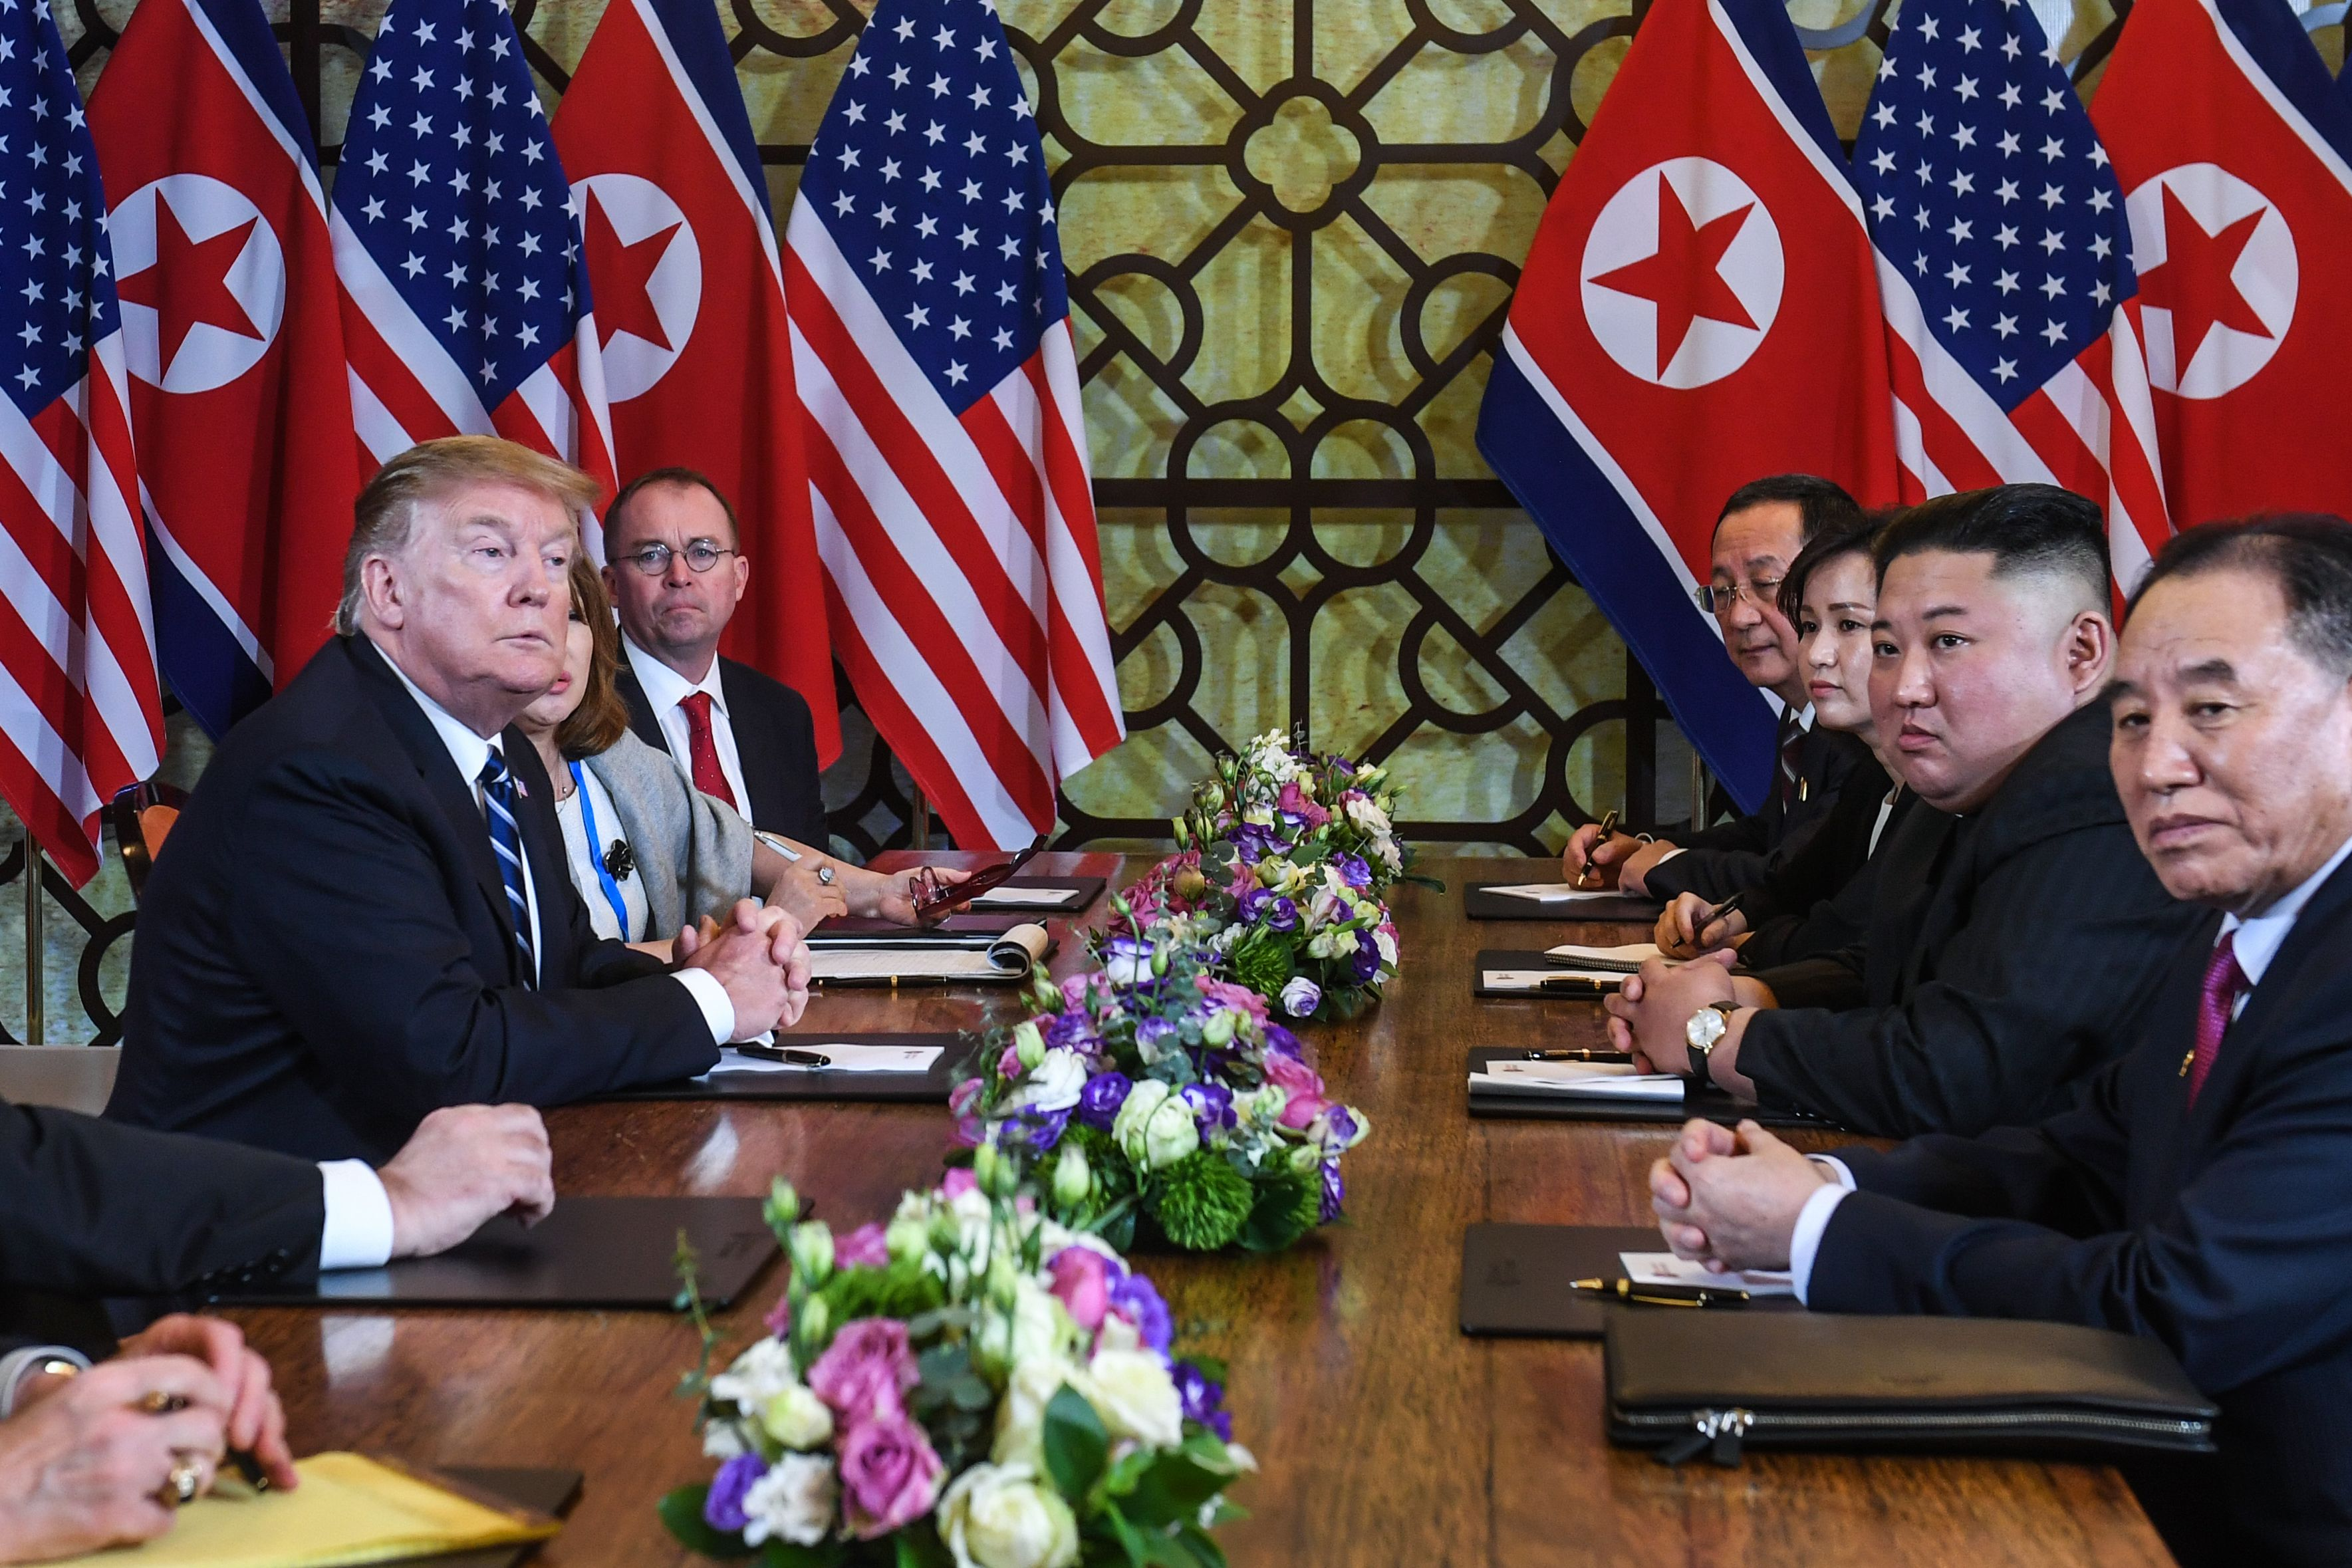 US President Donald Trump (L) and North Korea's leader Kim Jong Un (2nd R) hold a bilateral meeting during the second US-North Korea summit at the Sofitel Legend Metropole hotel in Hanoi on February 28, 2019. (Photo by SAUL LOEB/AFP/Getty Images)